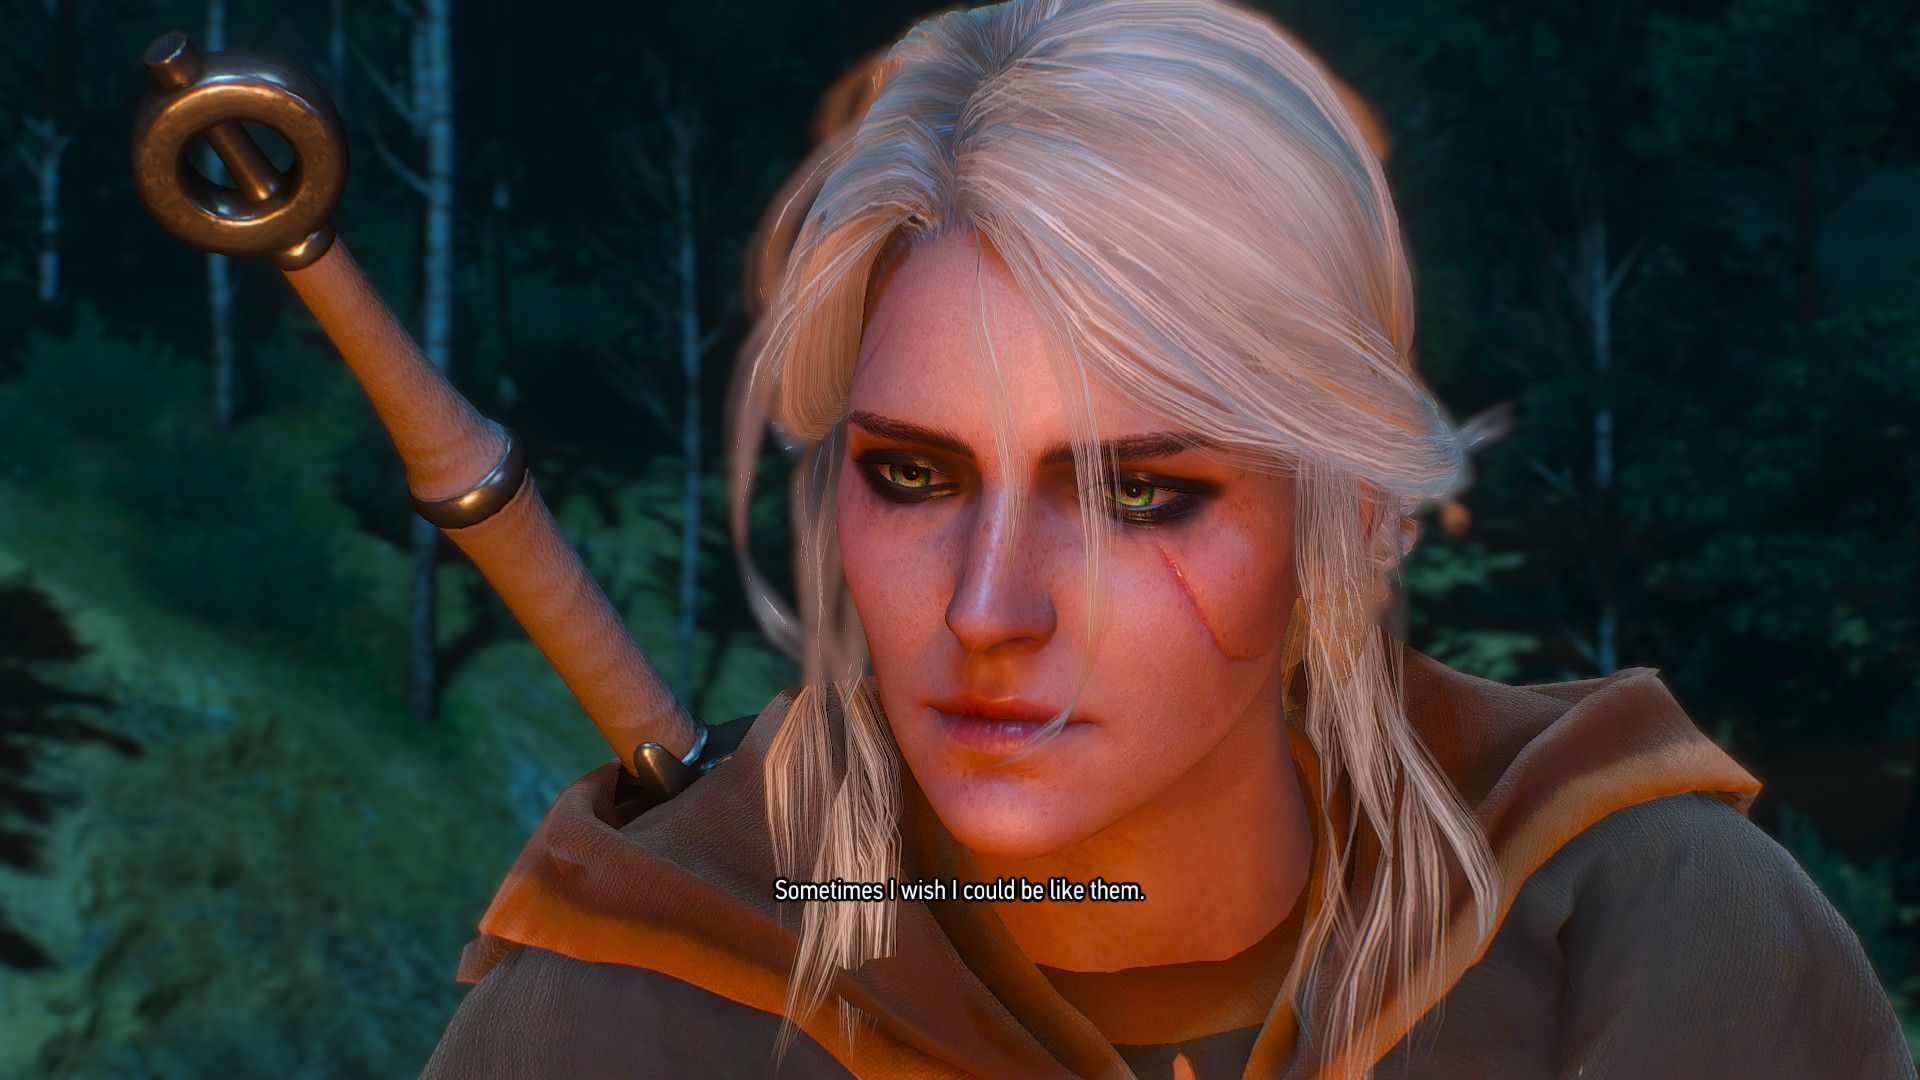 Me Too Thewitcher3 Ps4 Wildhunt Ps4share Games Gaming Thewitcher Thewitcher3wildhunt The Witcher Game Ciri Witcher Ciri